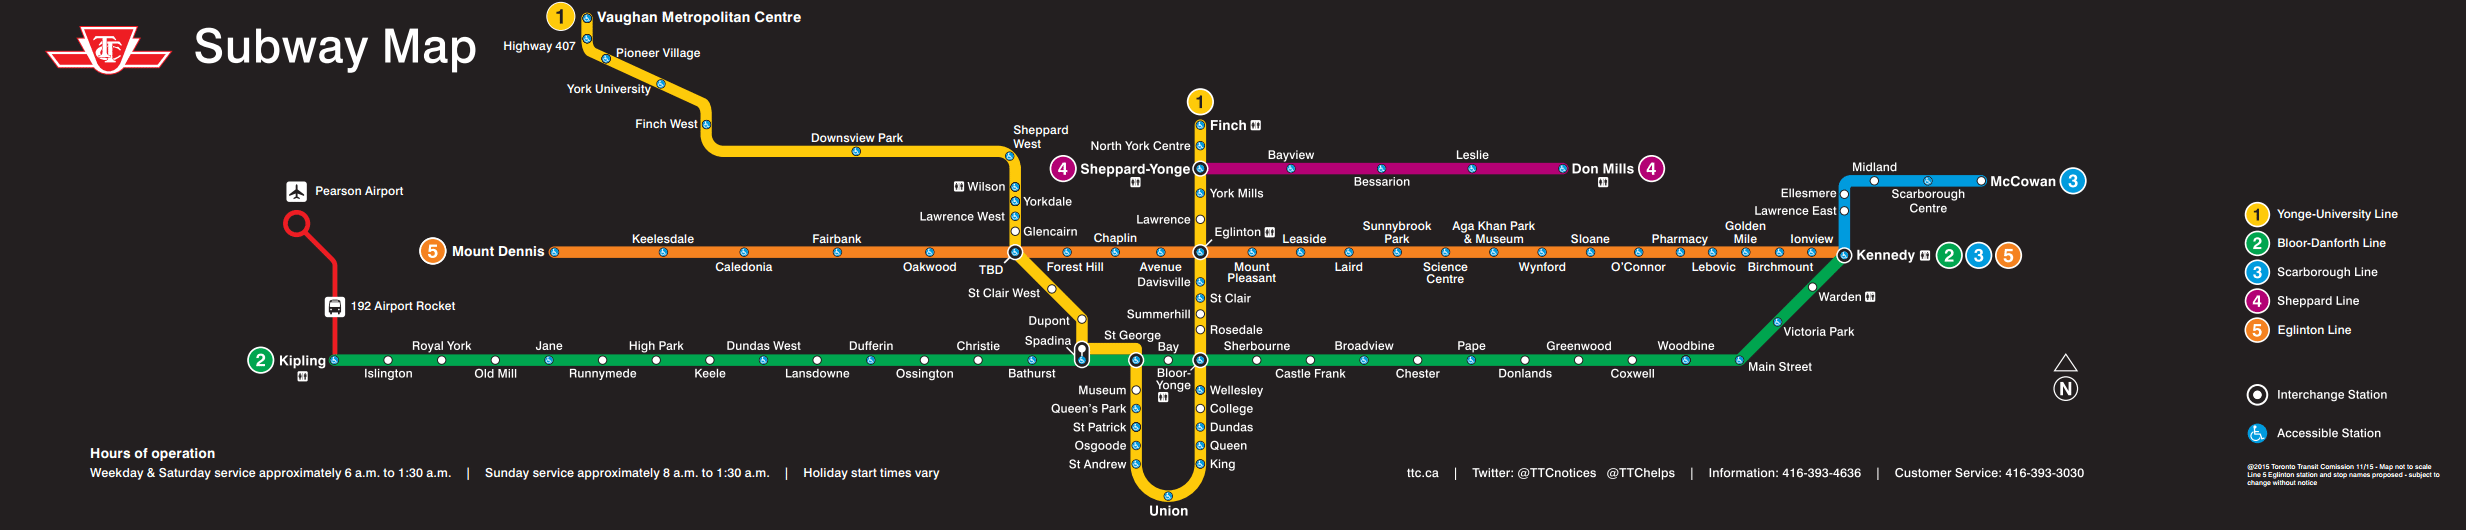 What your TTC map could look like in 2021 (Finch LRT not included)  Image from the TTC agenda for November 23 [PDF, pp  12]